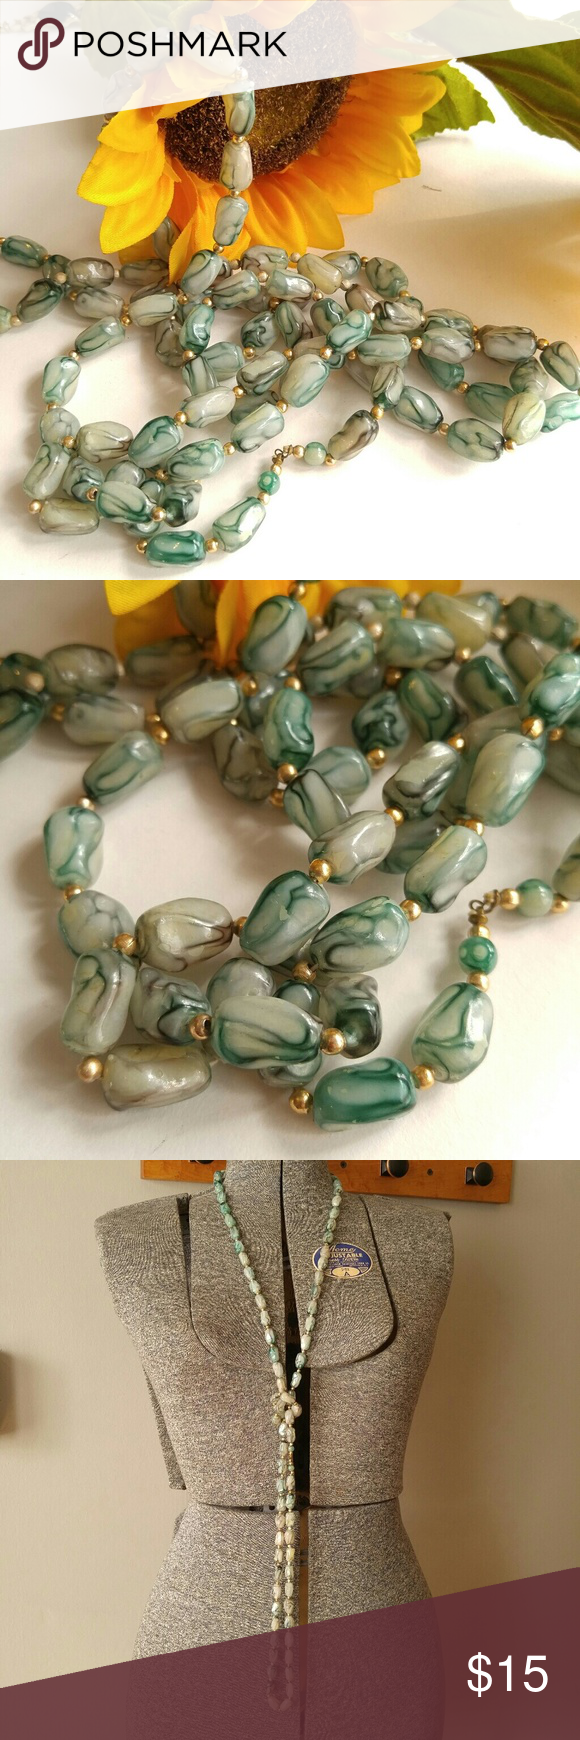 Vintage long green swirl bead necklace flapper Pretty vintage flapper length necklace made of swirled green plastic beads - in great shape and from a smoke free home -Offers welcome:)   8838bead5fes Vintage Jewelry Necklaces